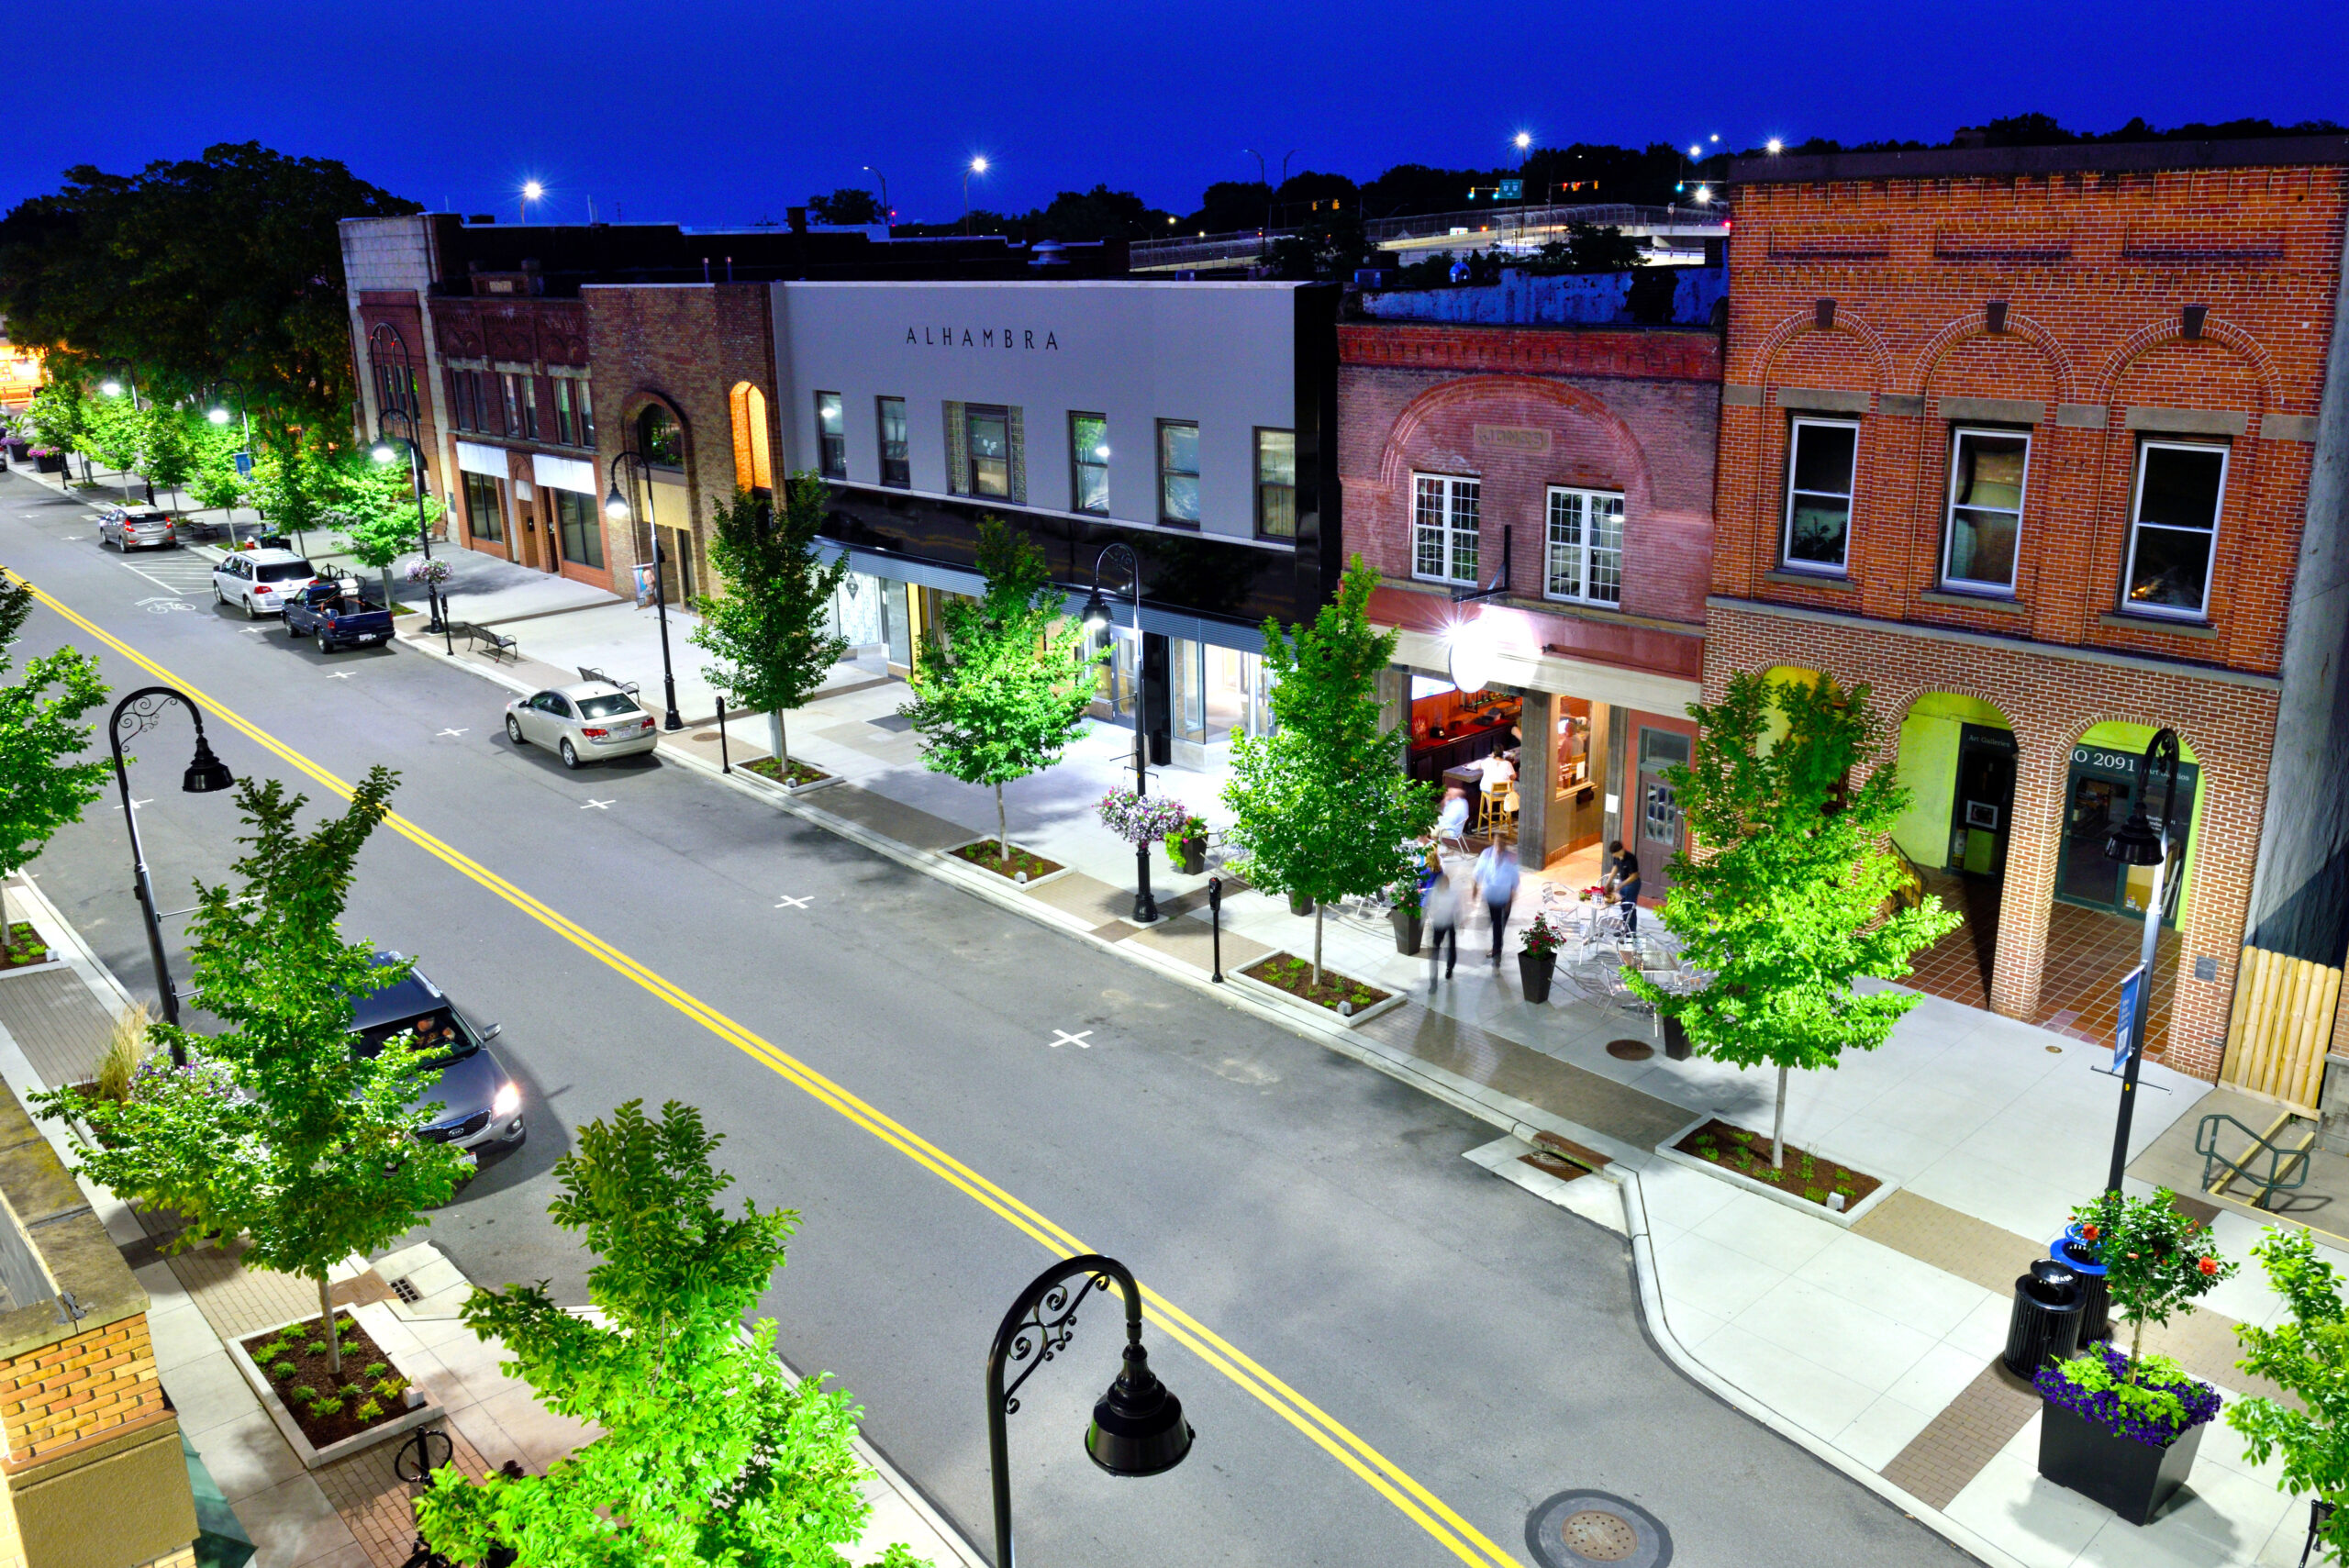 Depiction of downtown Cuyahoga Falls.